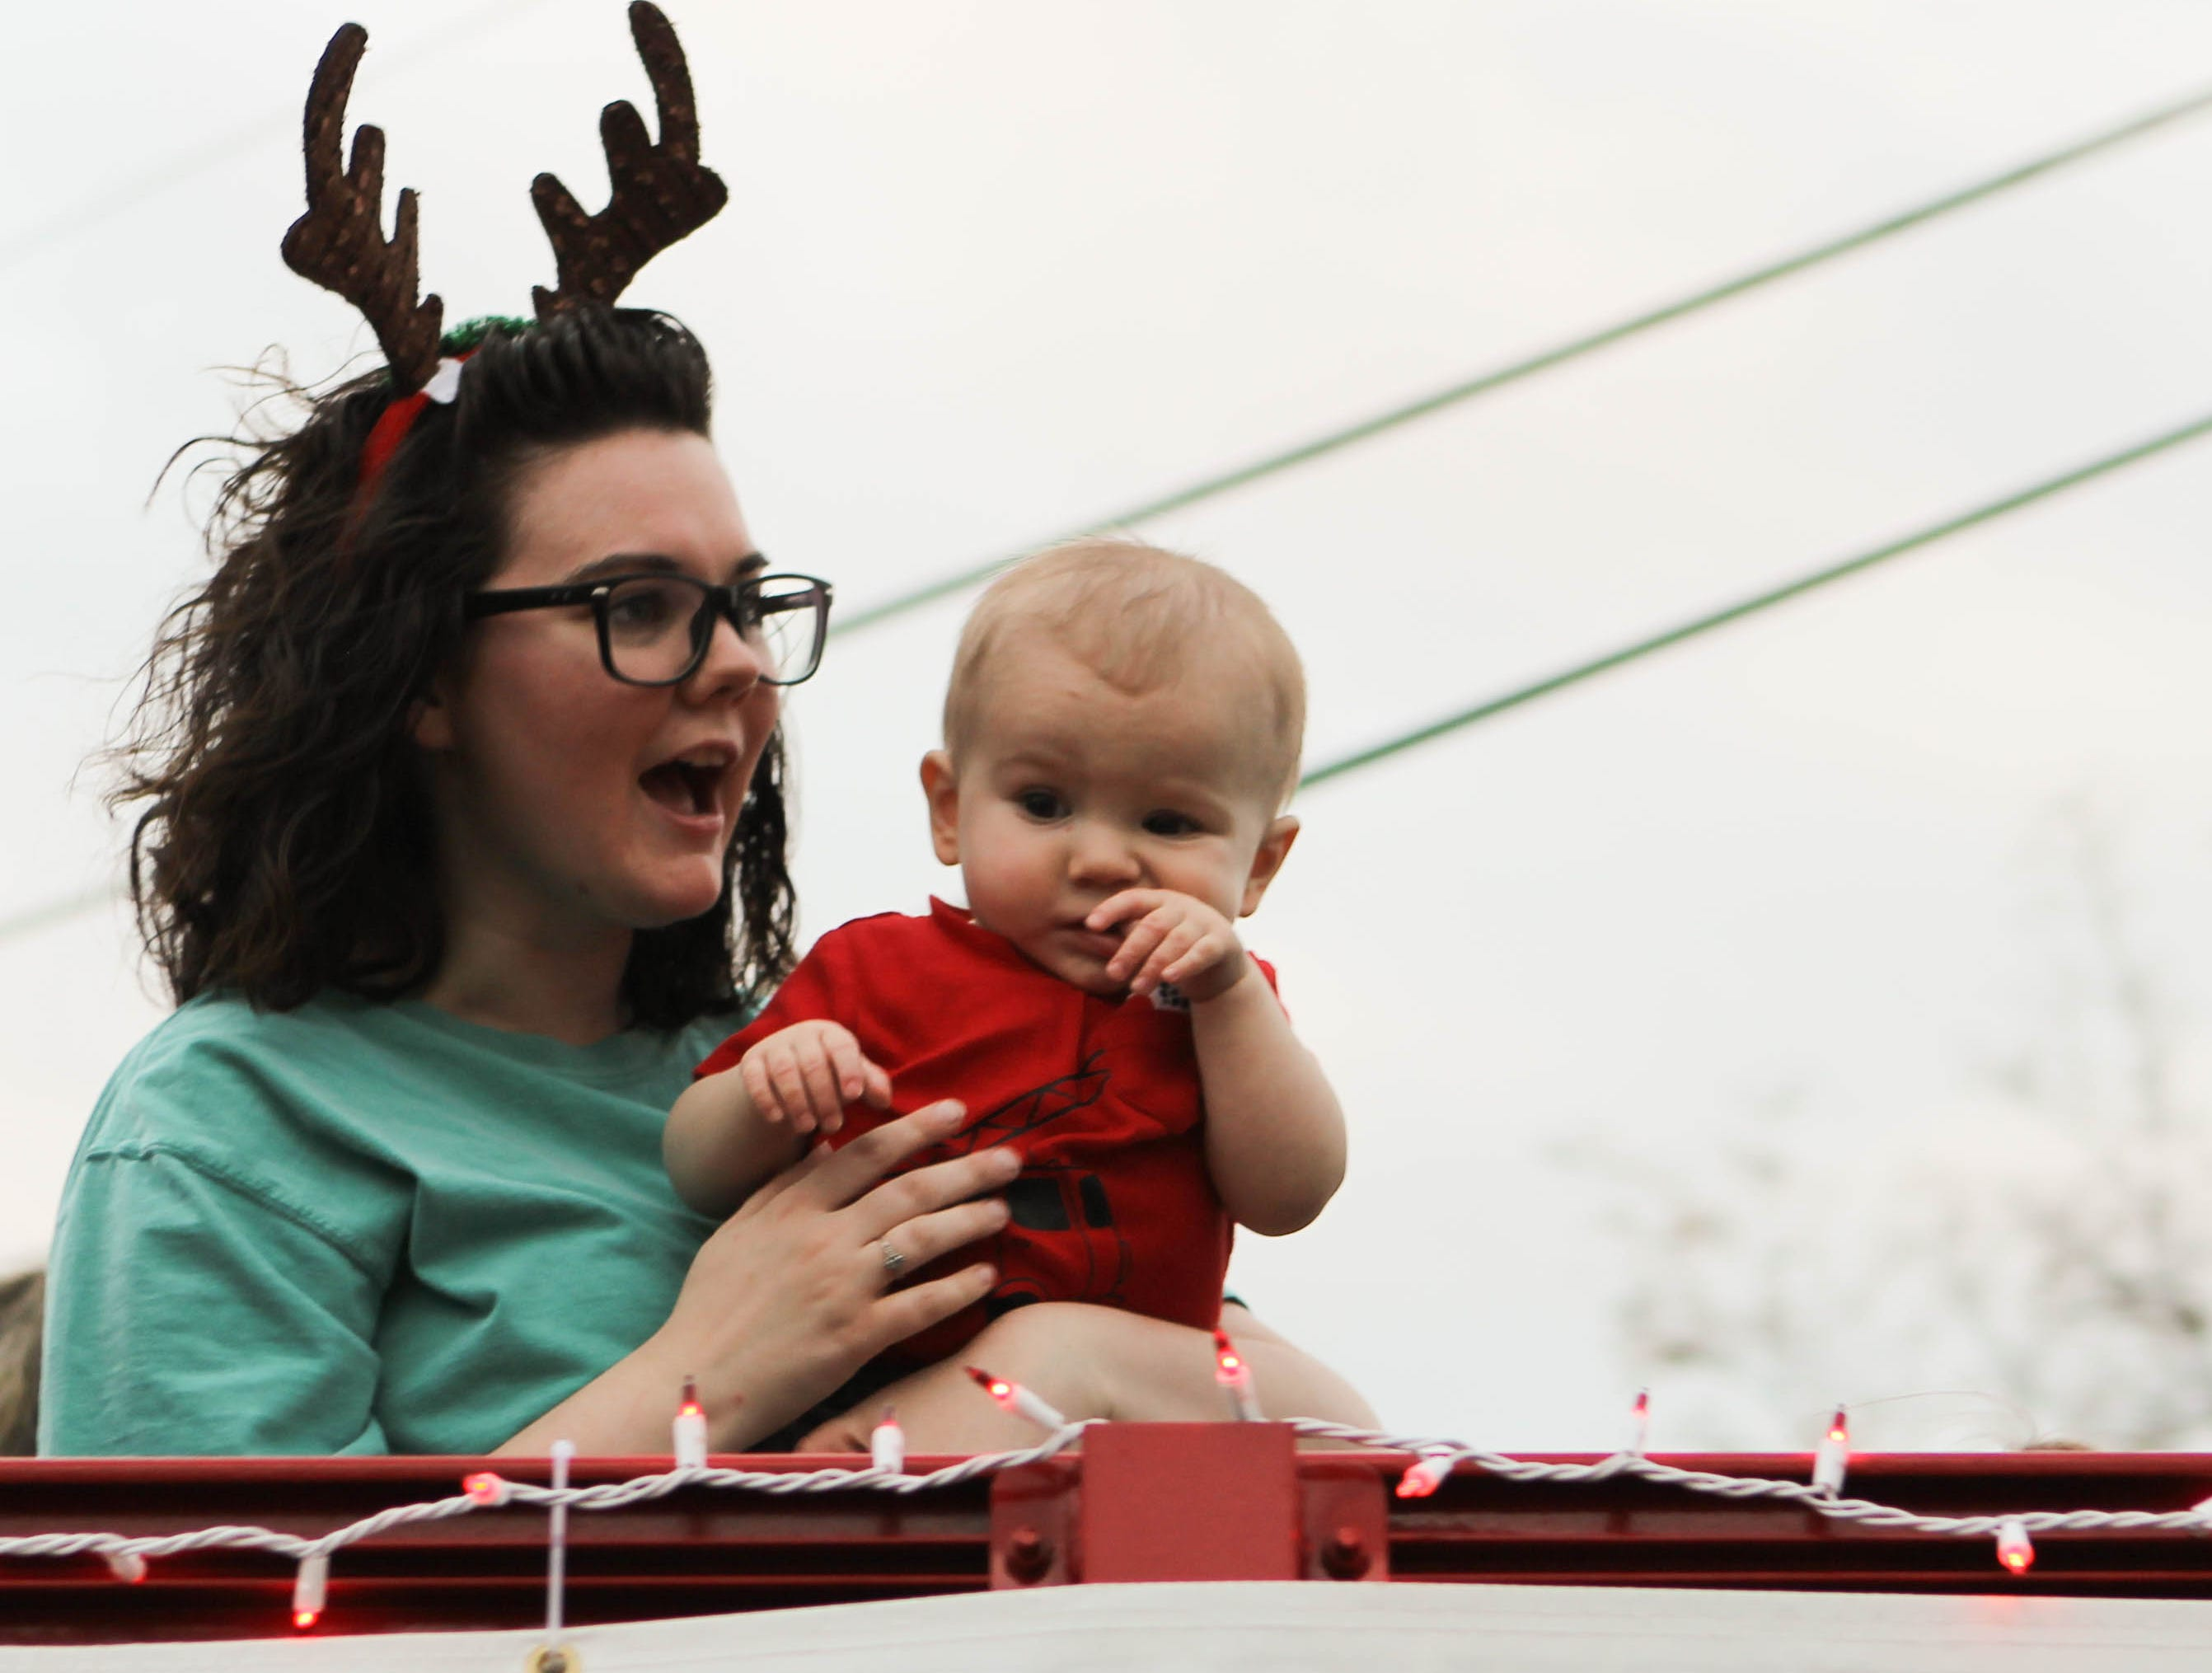 Sporting reindeer antlers, a parade participant holds a baby during the Christmas parade in Petal on Saturday, December 1, 2018.